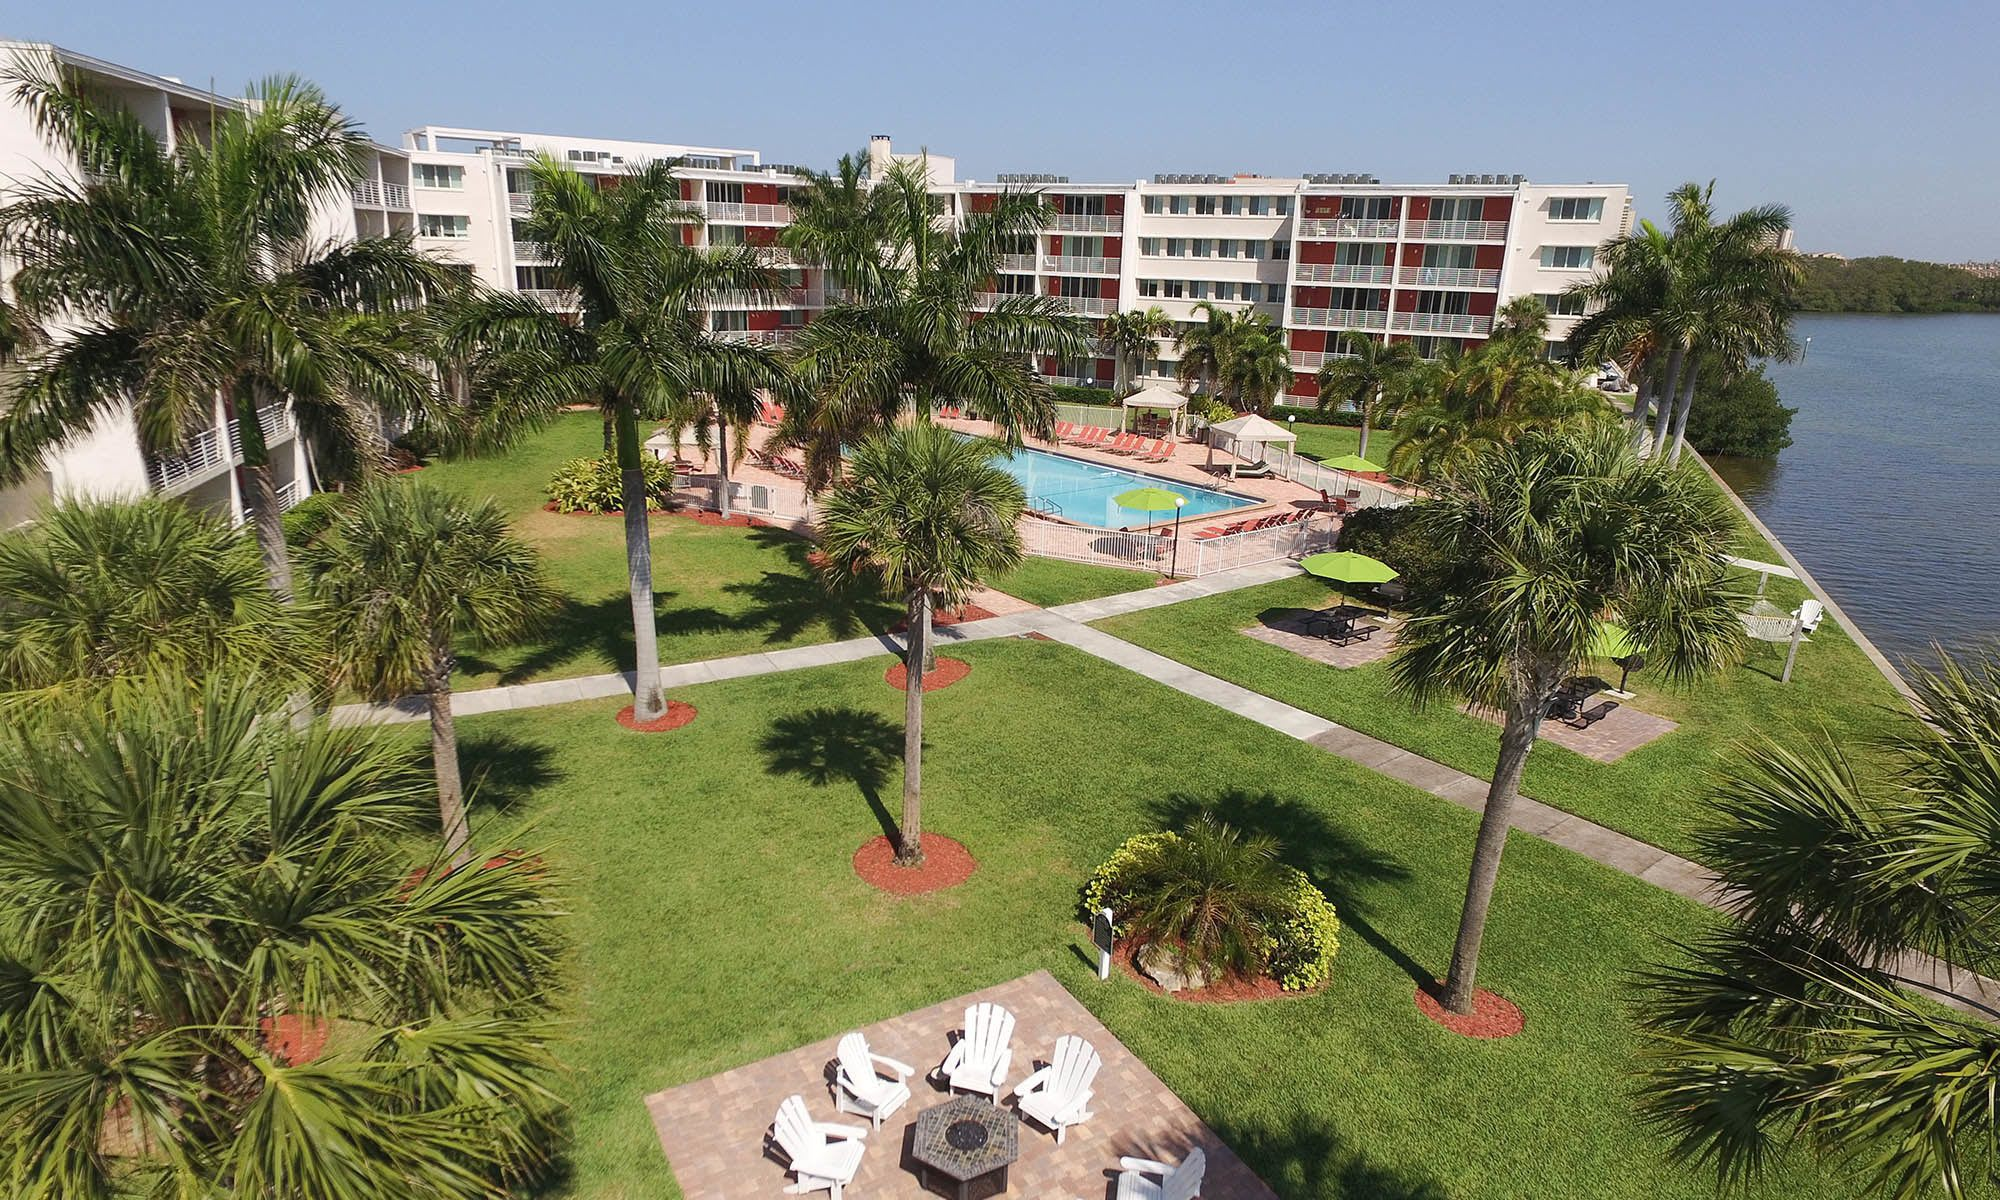 Welcome to Waters Pointe Apartments in South Pasadena, FL